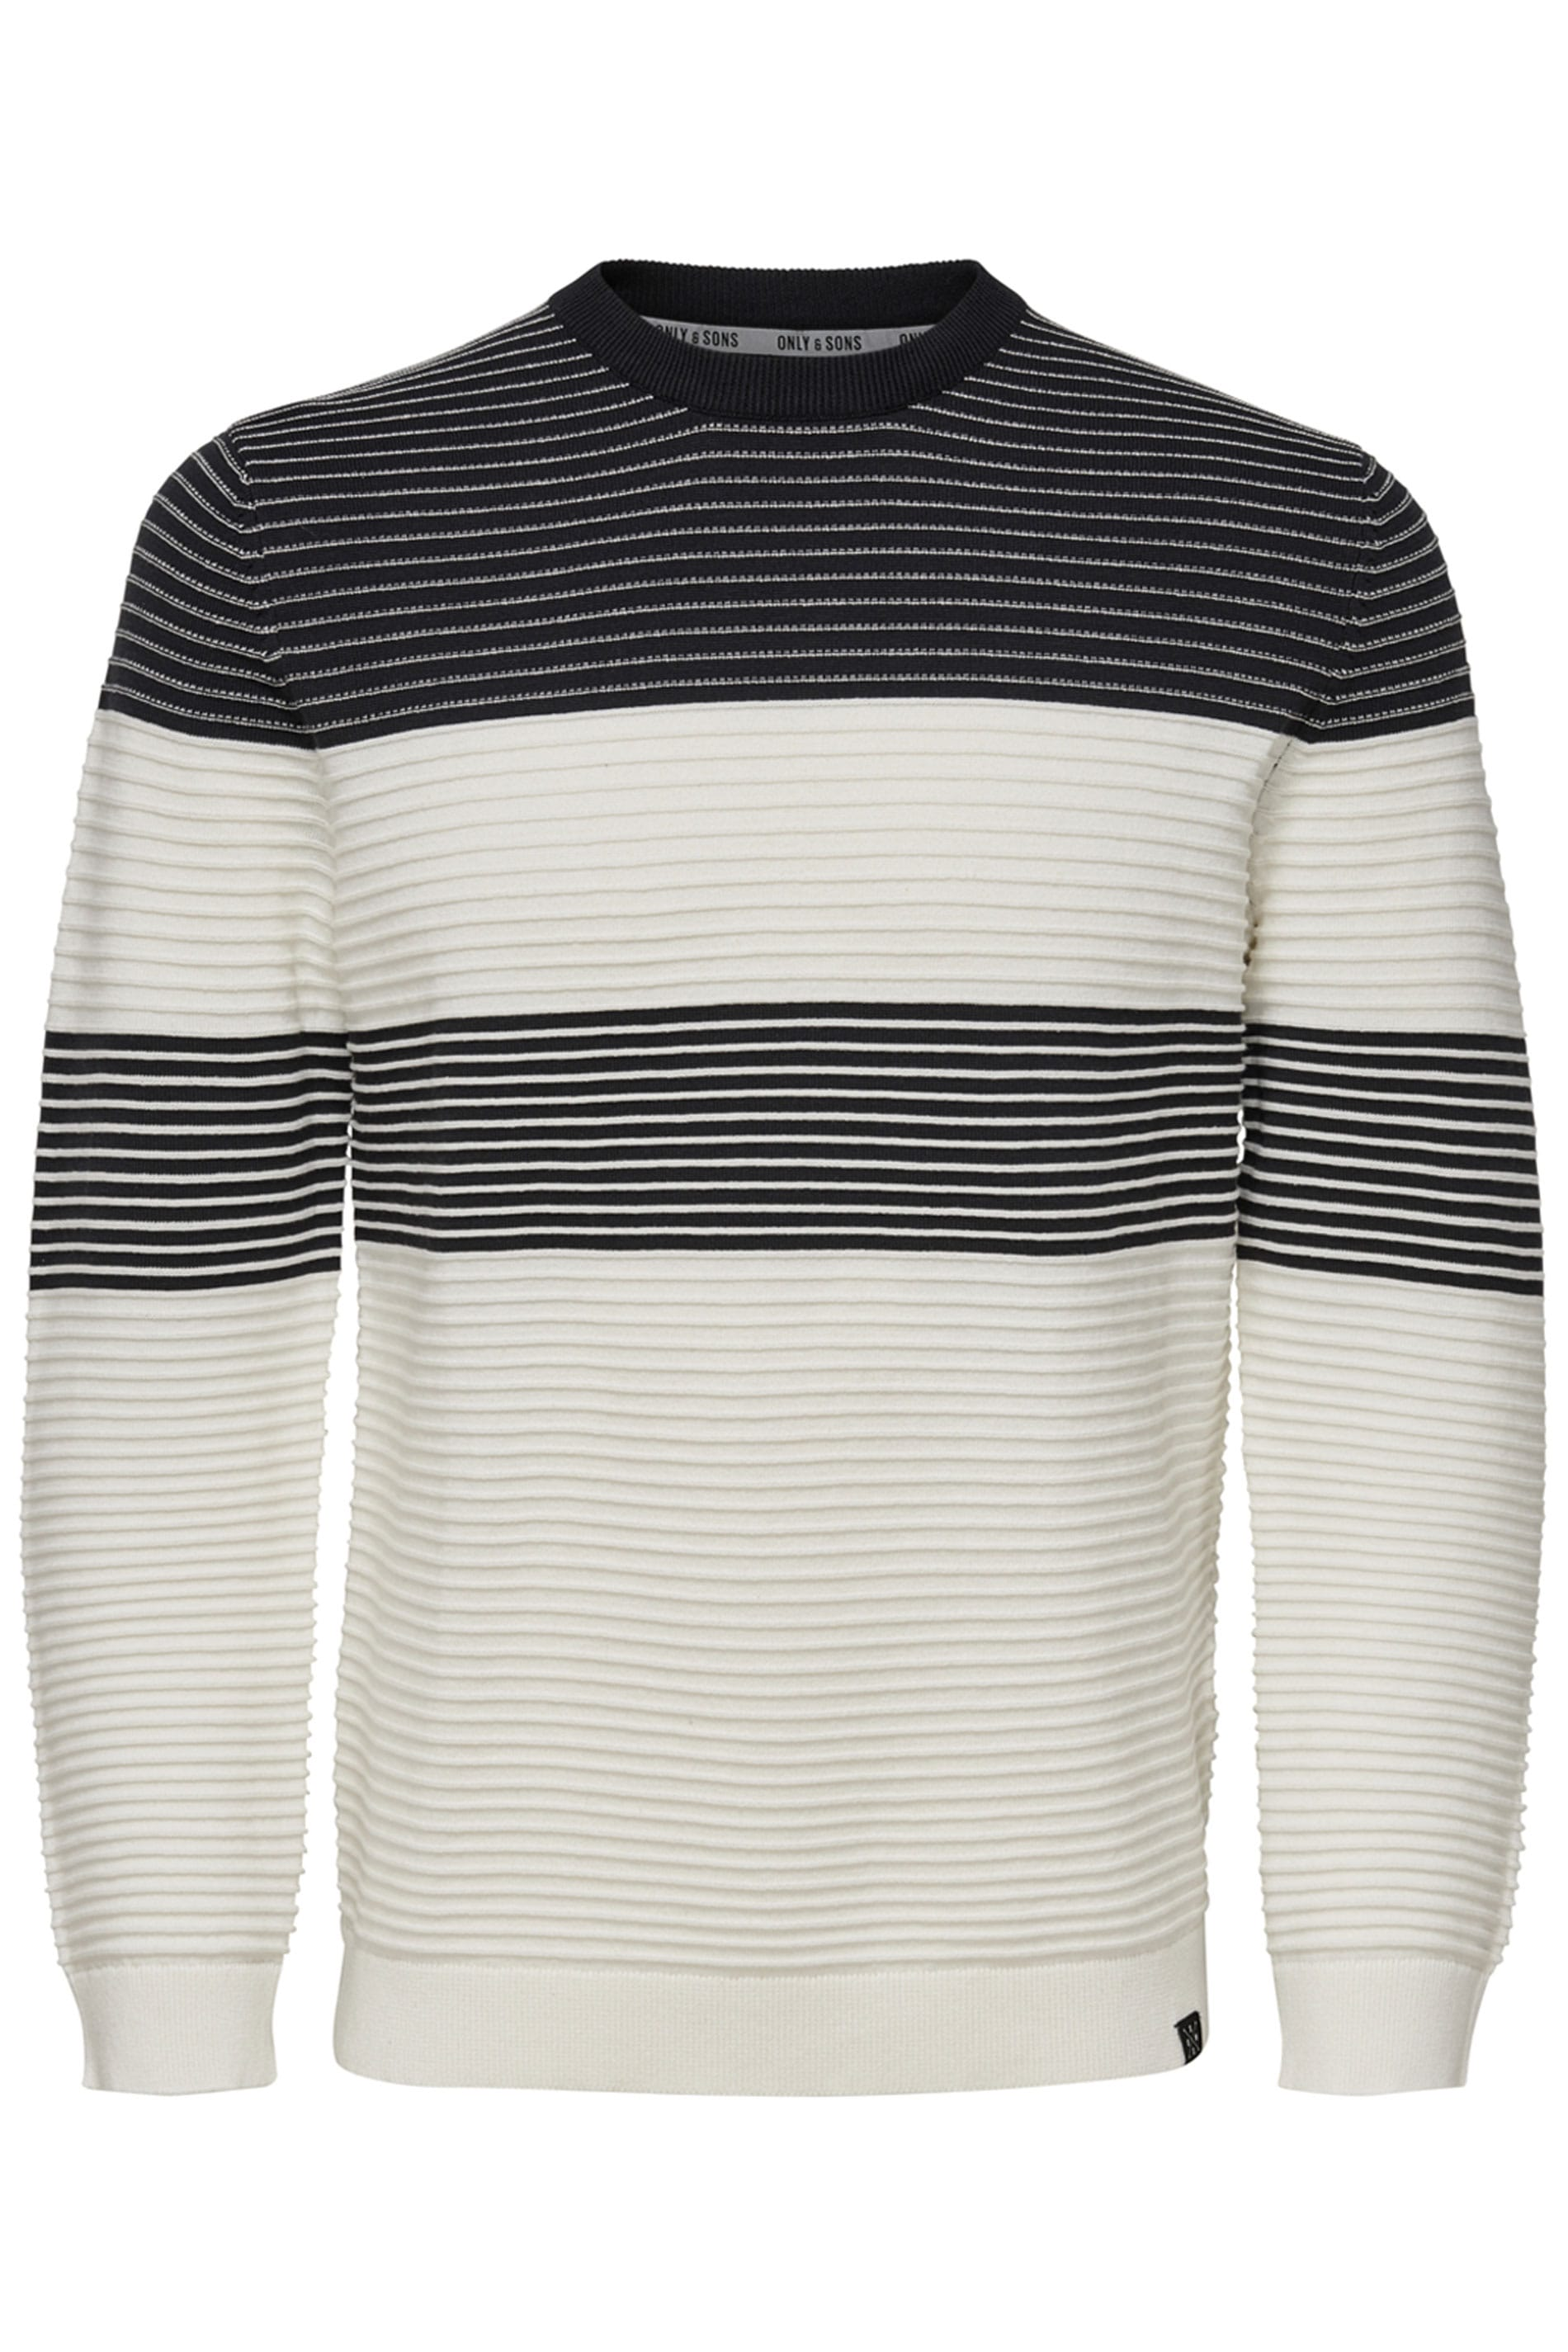 ONLY & SONS White Stripe Knitted Jumper